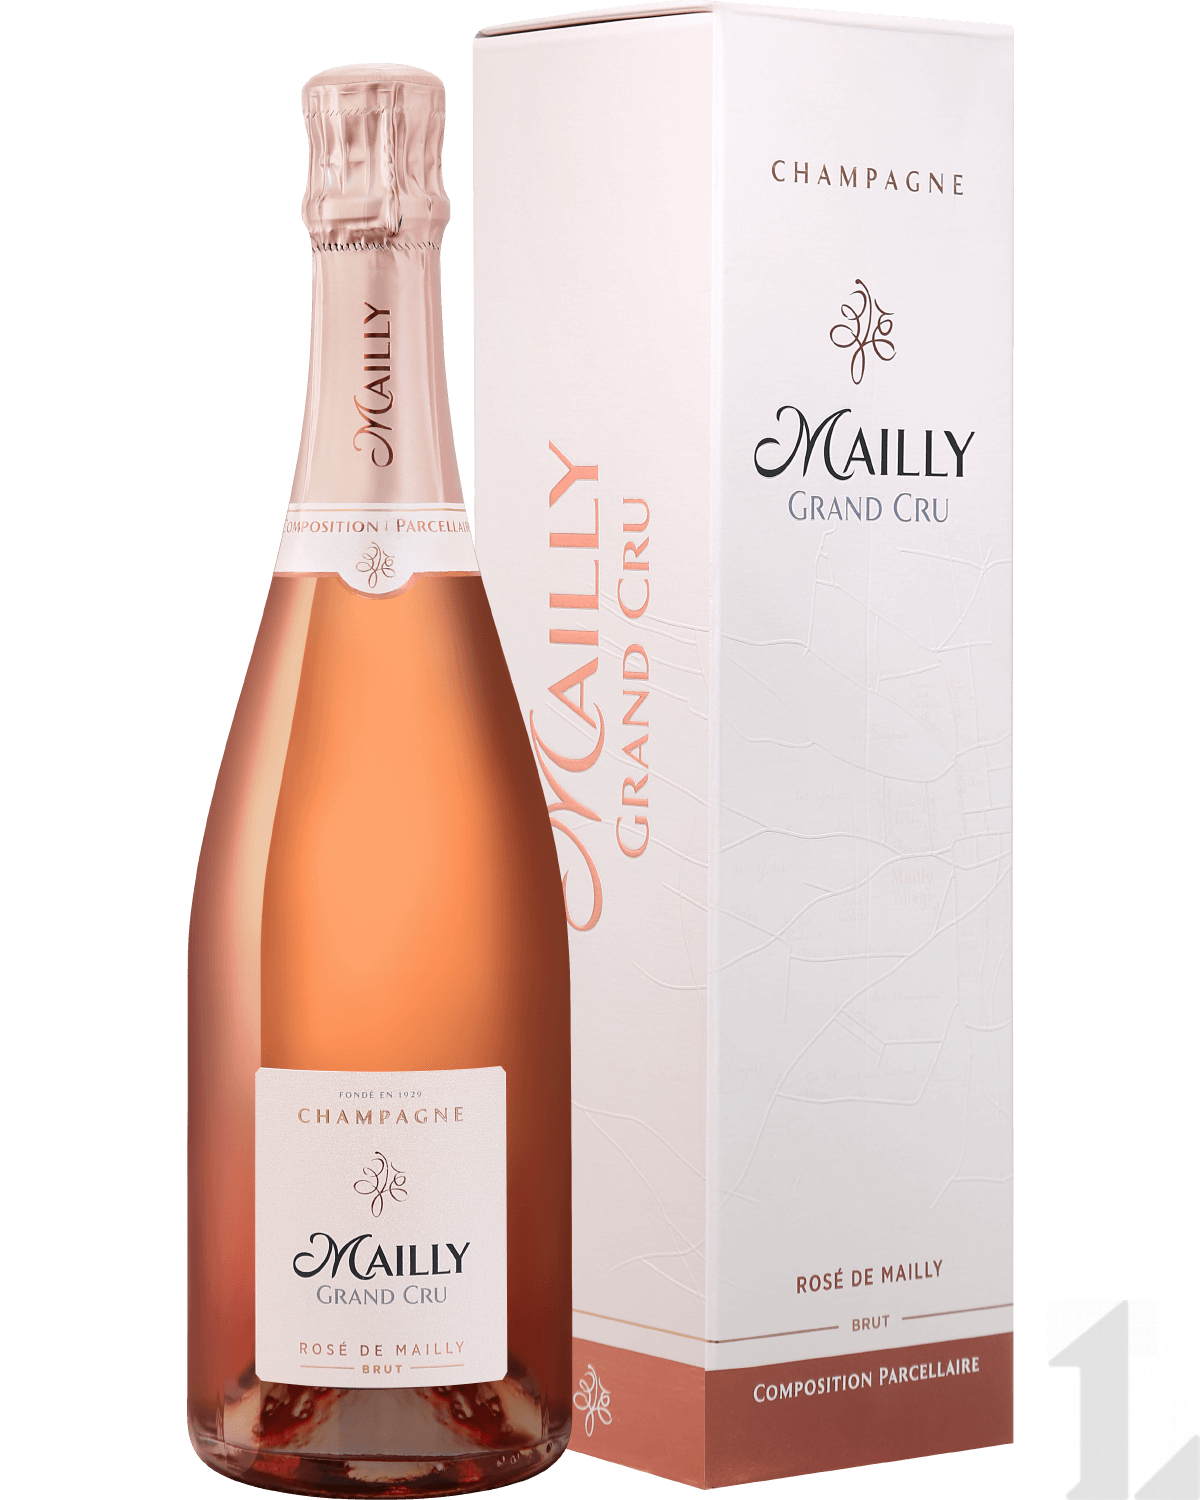 Игристое вино Mailly Grand Cru Rose de Mailly Brut Champagne AOC (gift box) 0.75л